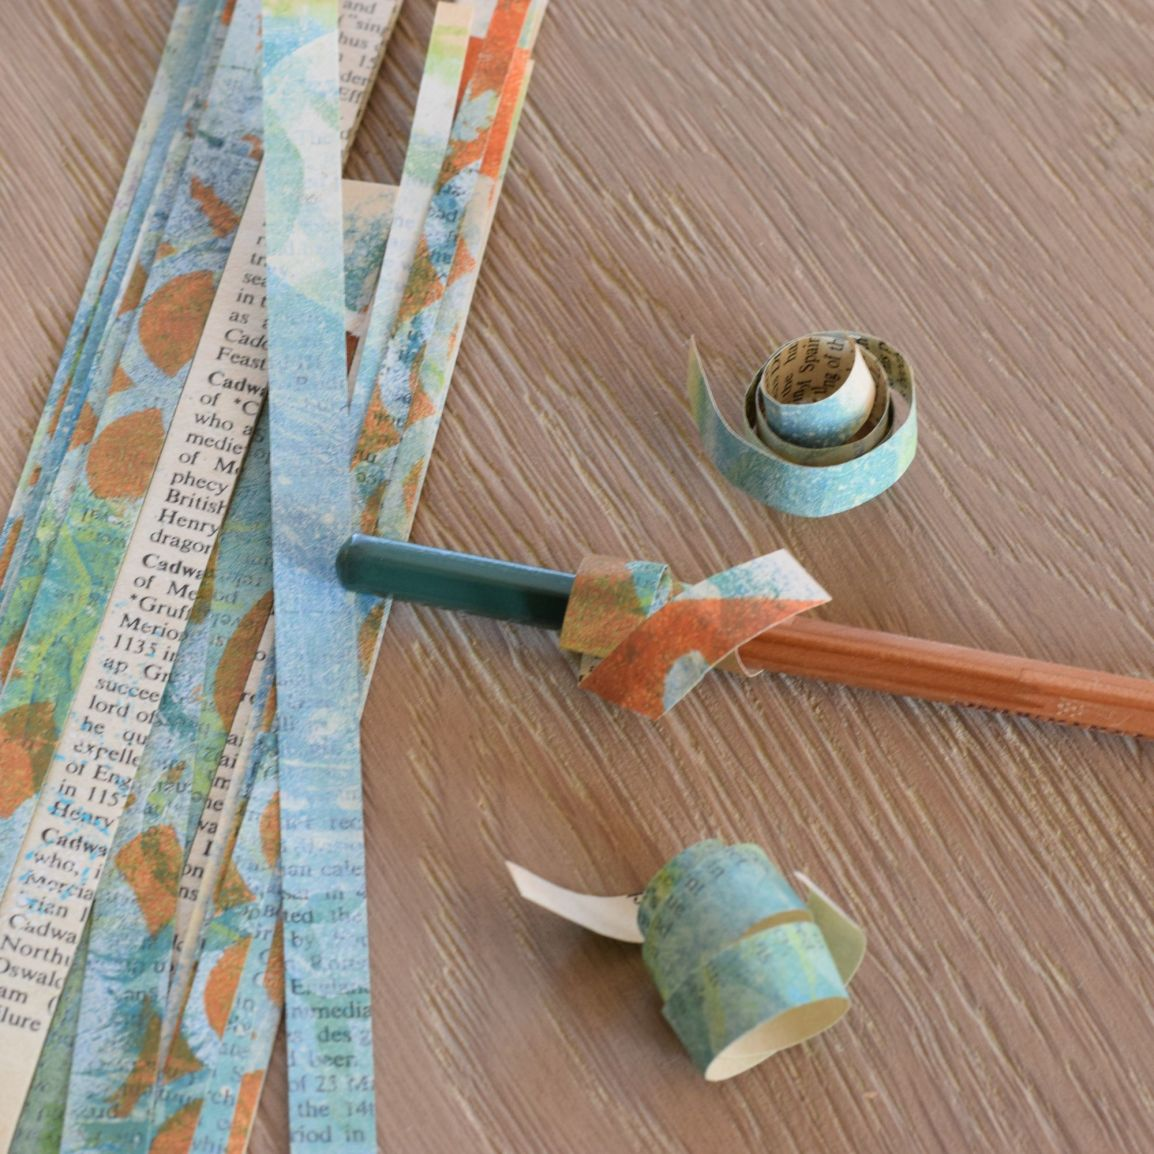 Winding strips of paper around a pencil to make paper filled Christmas baubles